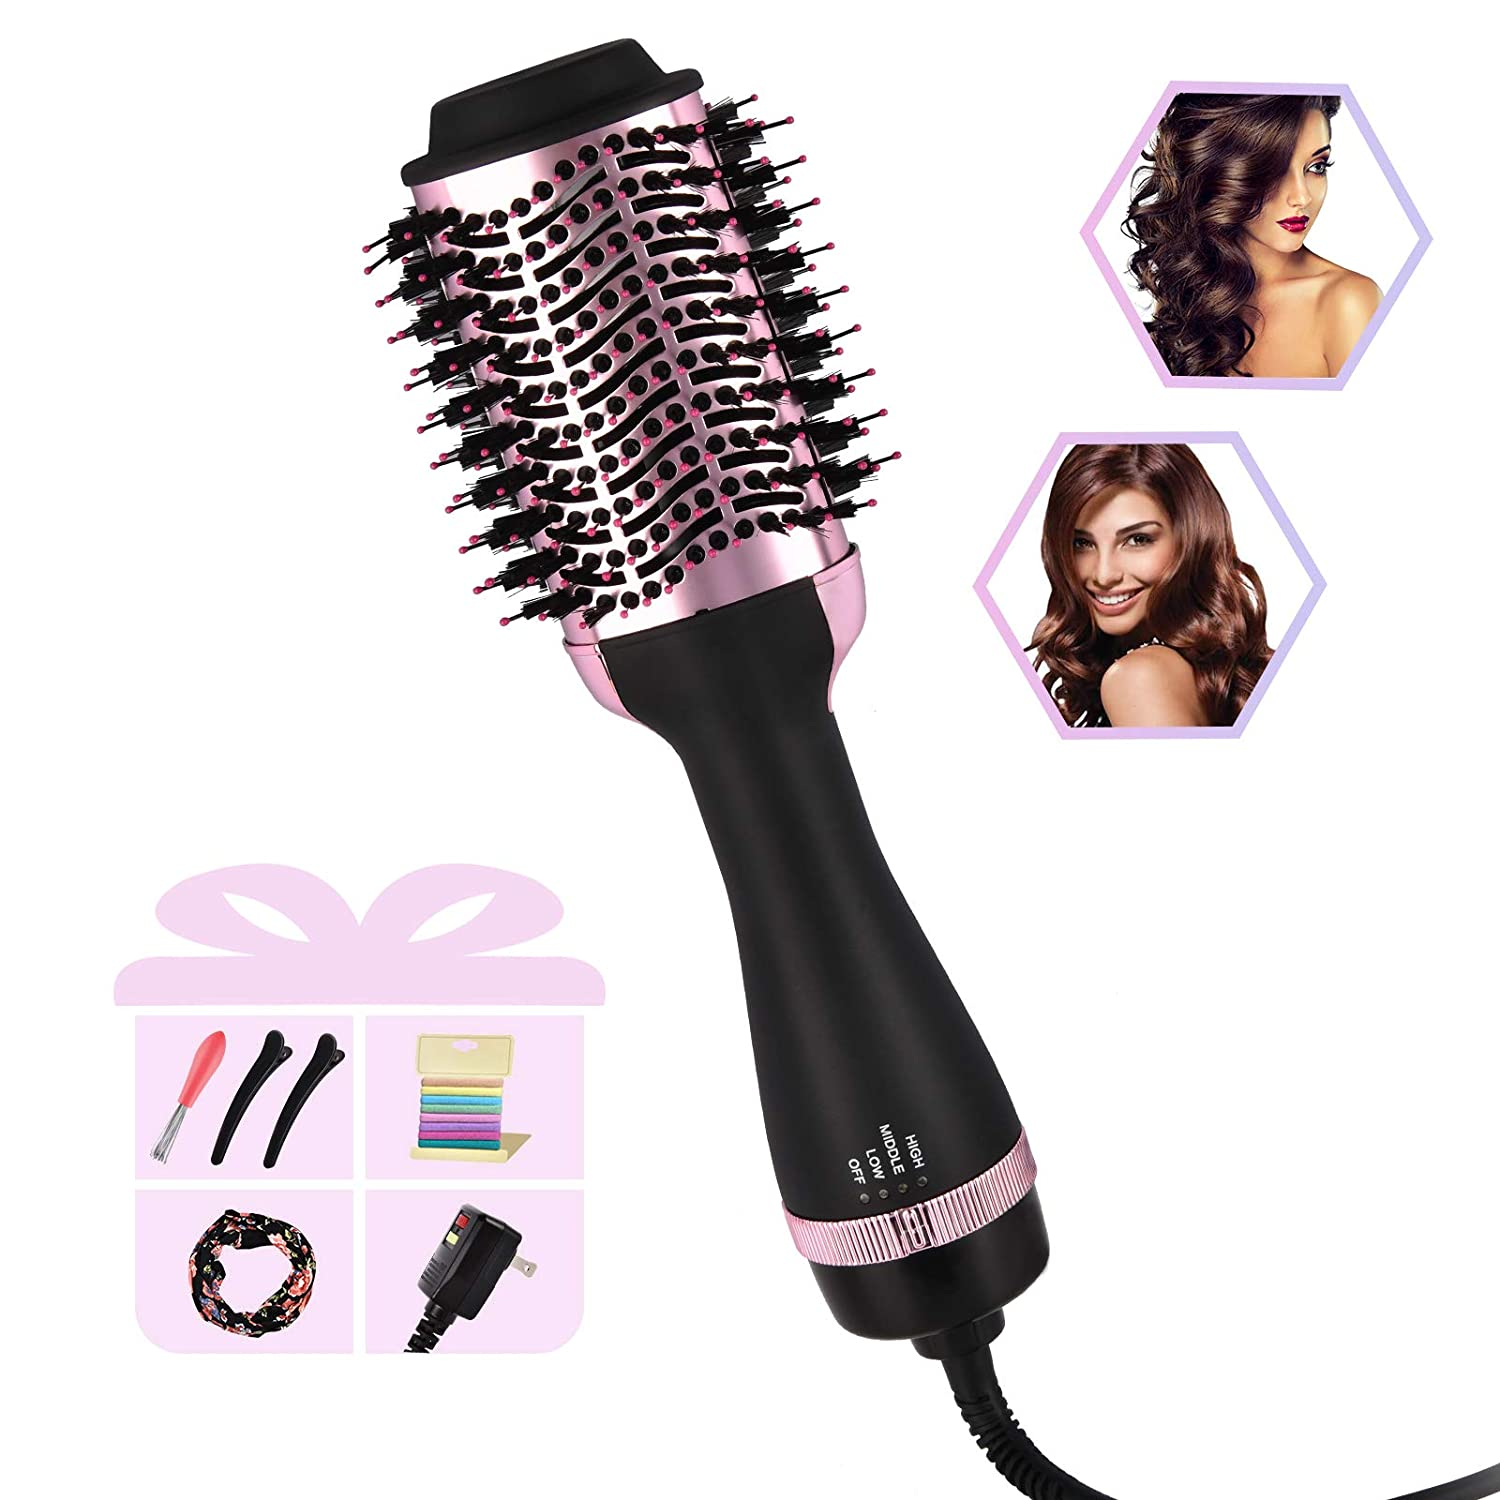 Hot Air Brush, Hair Dryer & Volumizer Brush, Hair Dryer Brush, 4 in 1 Professional Negative Ionic Ceramic Hair Styler for Salon at Home, Anti Scald Frizz-free Blow Dryer Brush